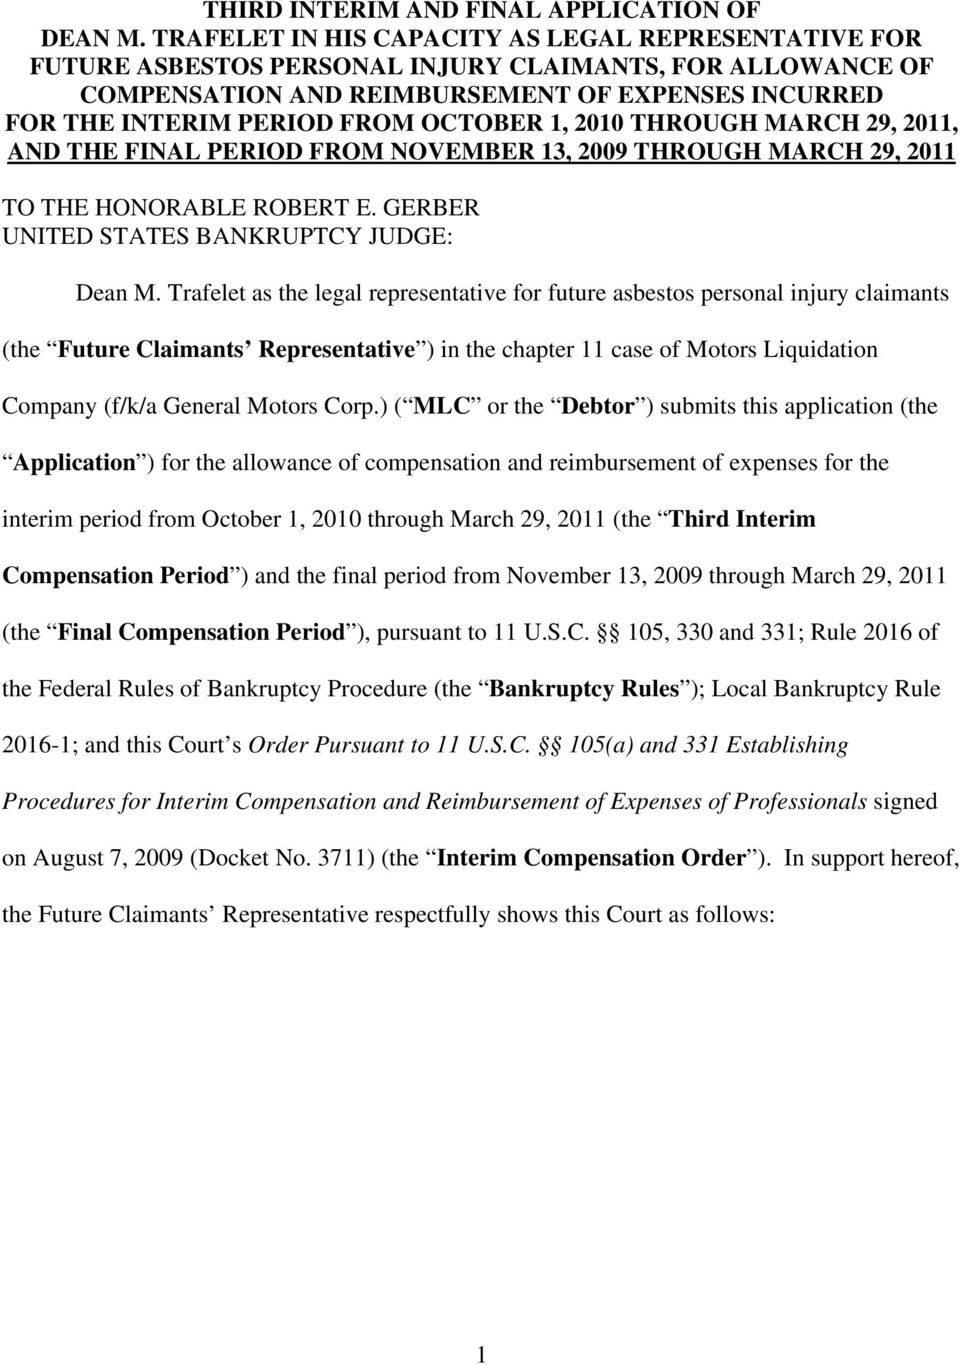 OCTOBER 1, 2010 THROUGH MARCH 29, 2011, AND THE FINAL PERIOD FROM NOVEMBER 13, 2009 THROUGH MARCH 29, 2011 TO THE HONORABLE ROBERT E. GERBER UNITED STATES BANKRUPTCY JUDGE: Dean M.